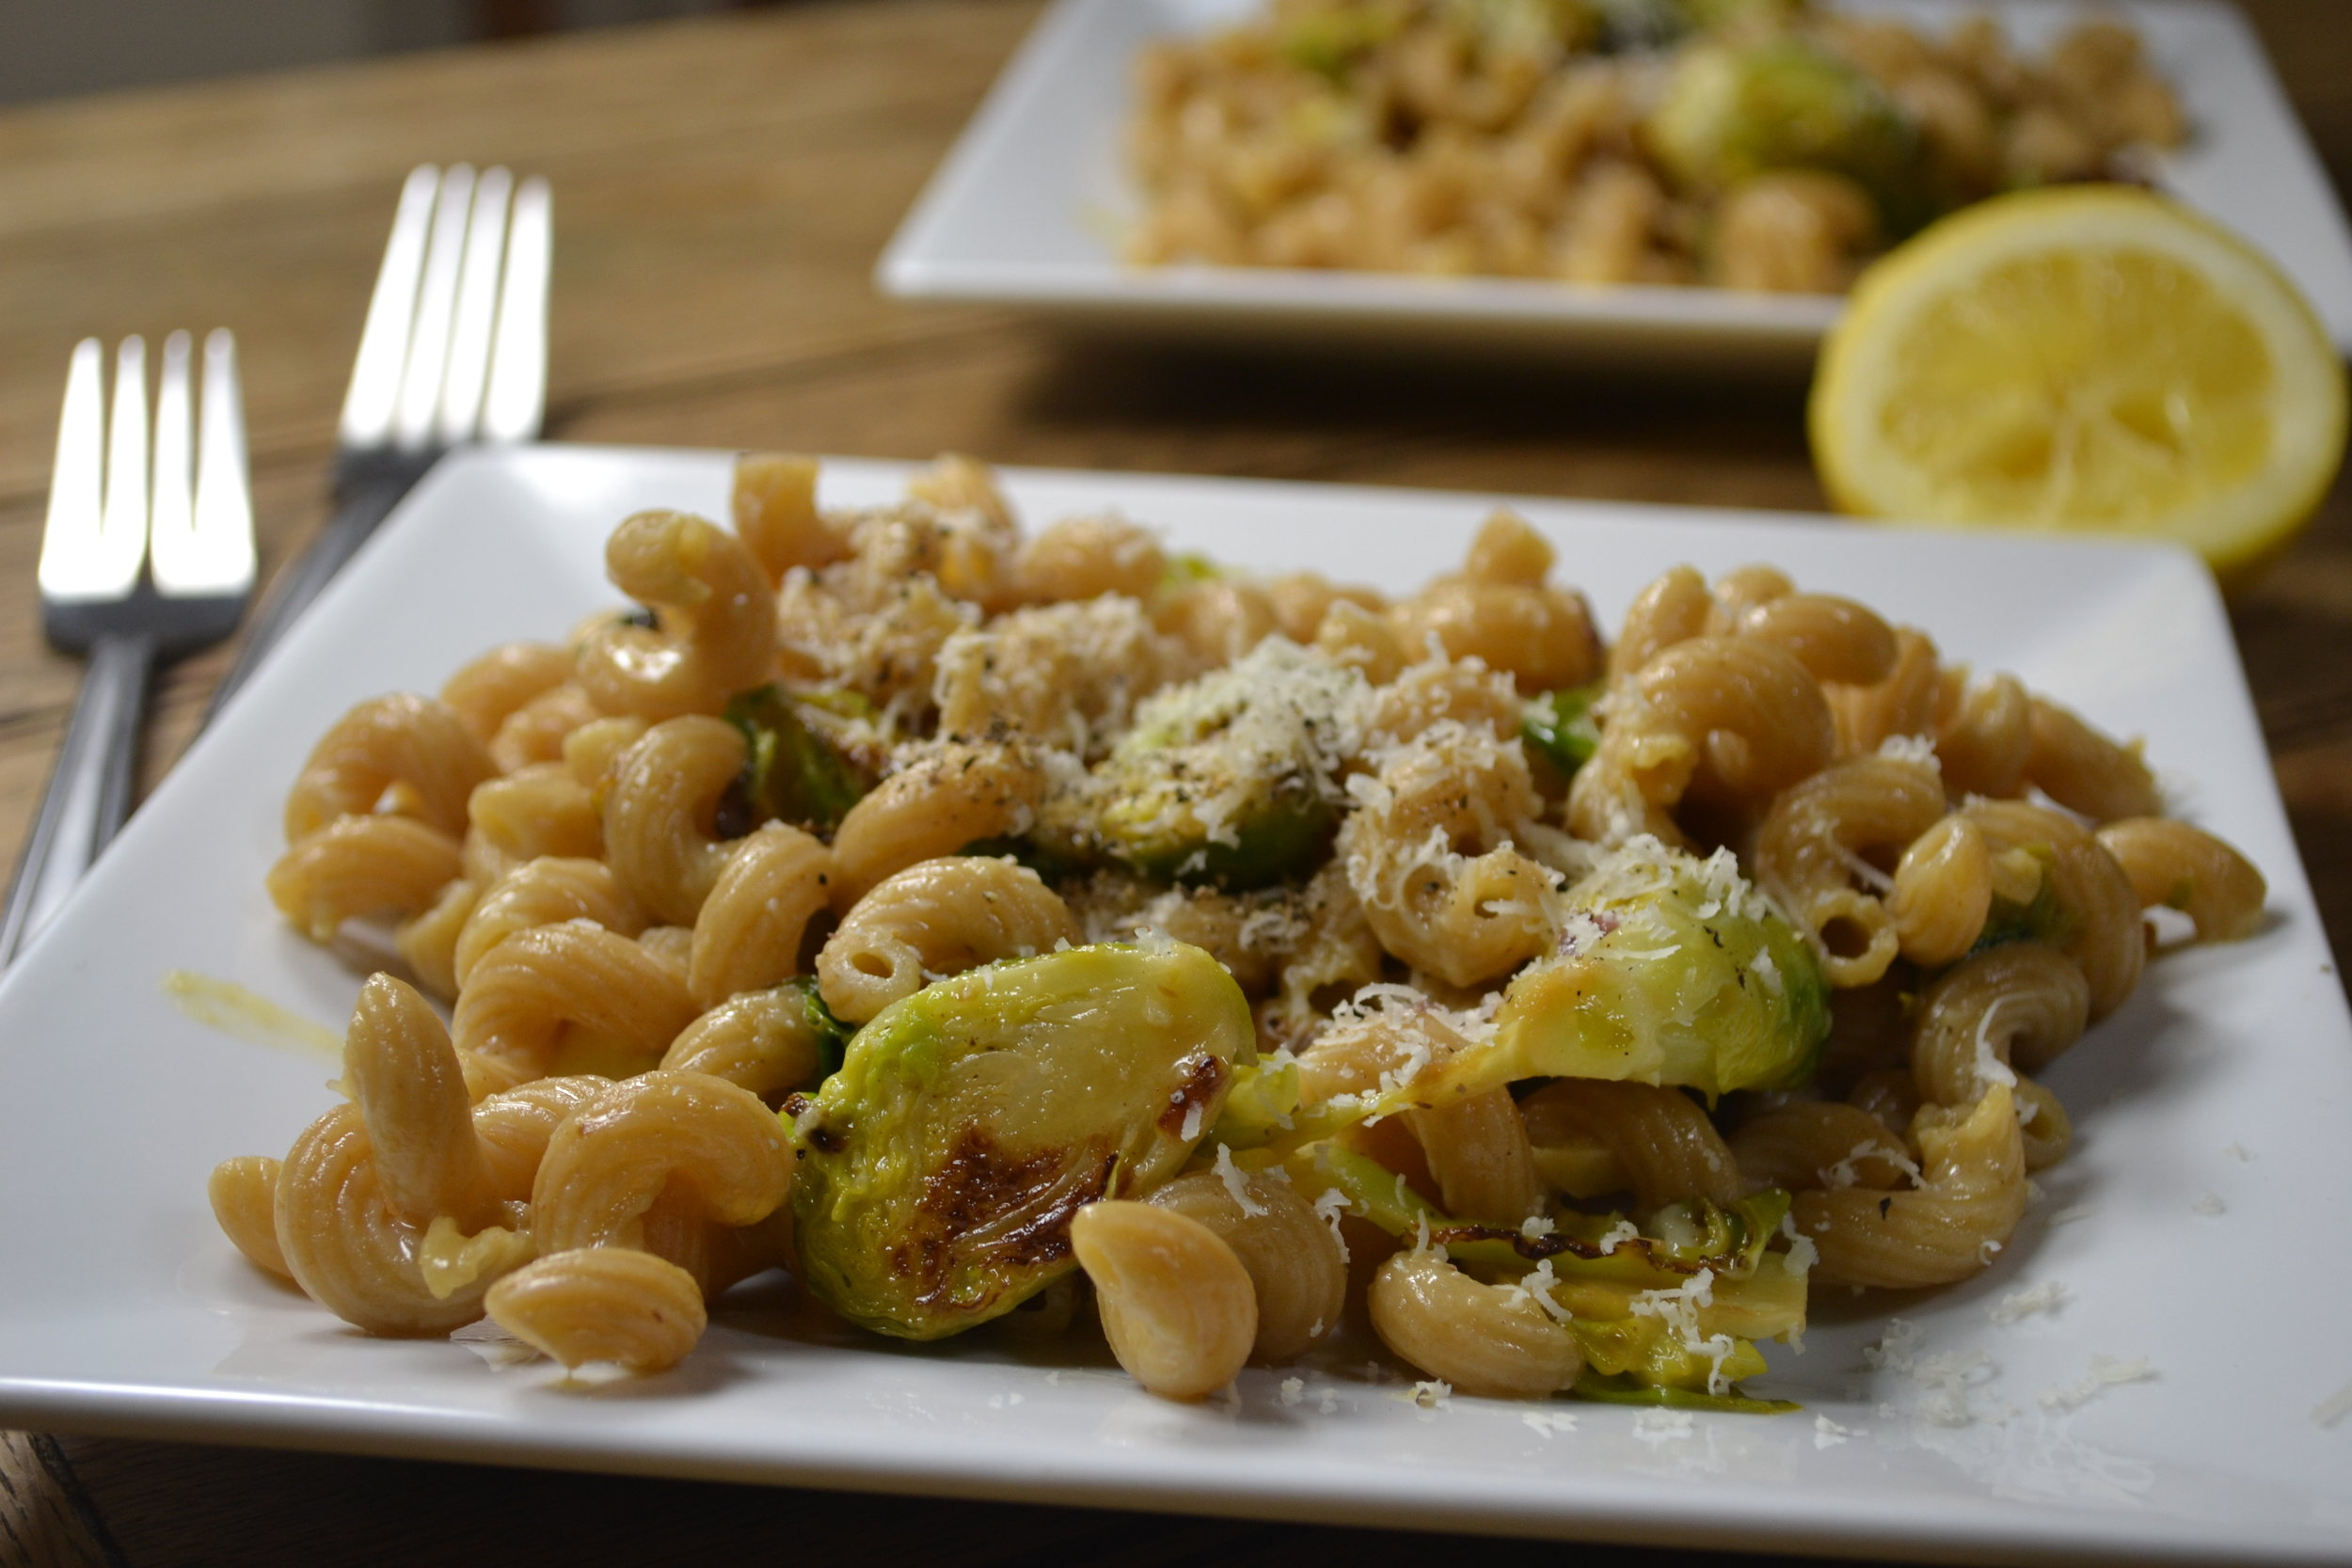 Lemon and Brussels Sprout Carbonara